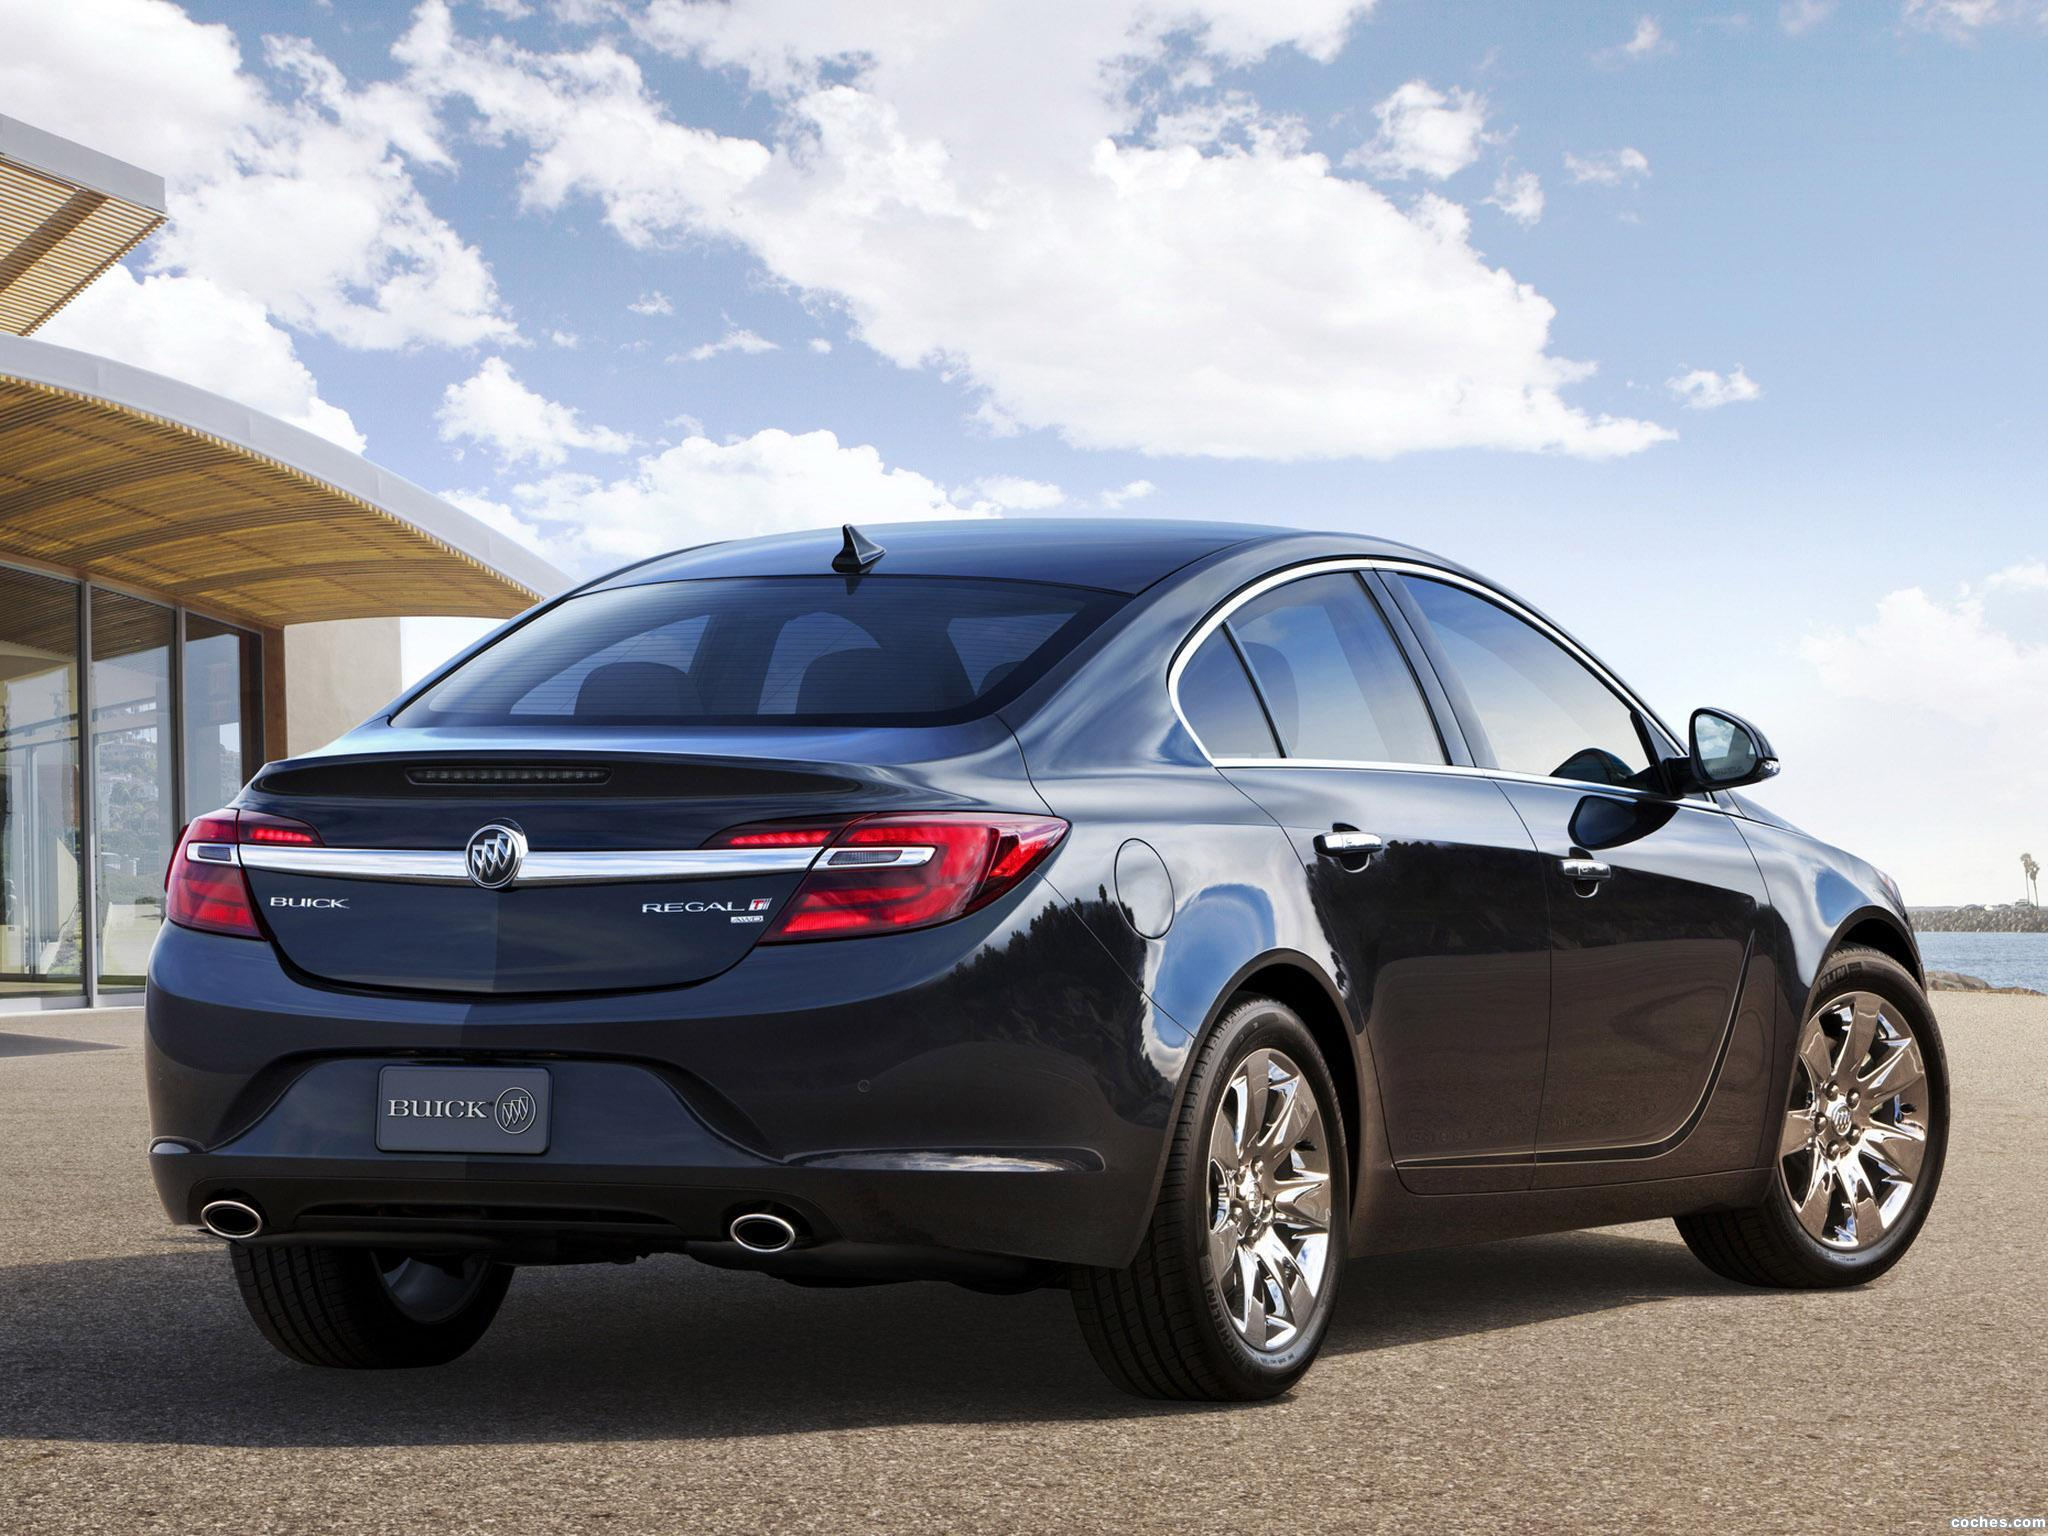 Foto 1 de Buick Regal 2013